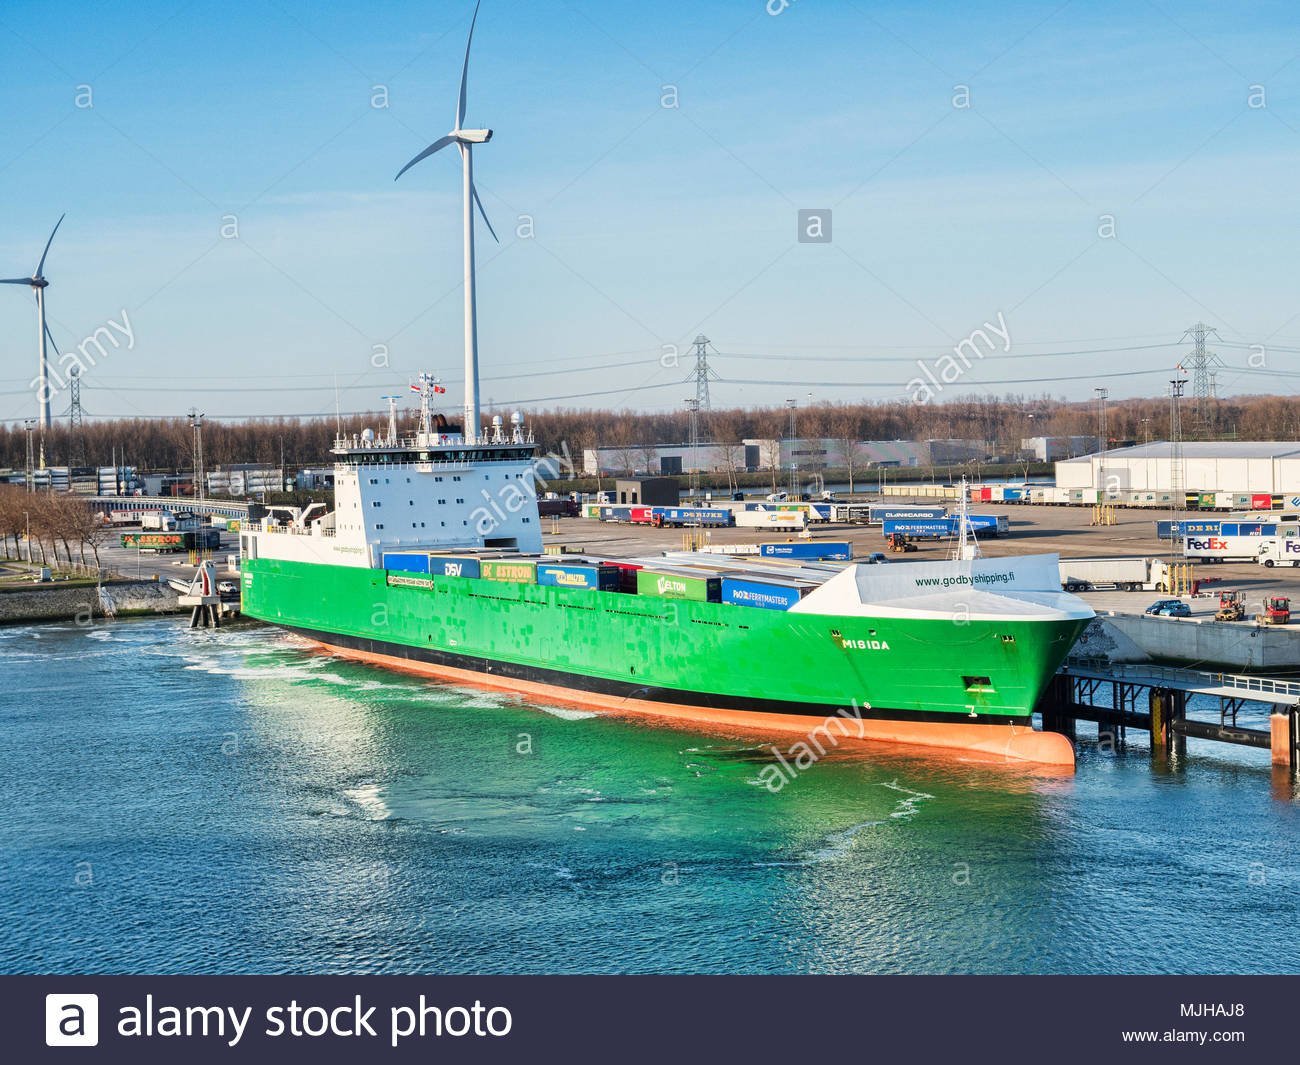 6 April 2018: Rotterdam, Netherlands - Godby ro-ro cargo ship Misida at Port of Rotterdam on a bright spring morning with clear blue sky. - Stock Image